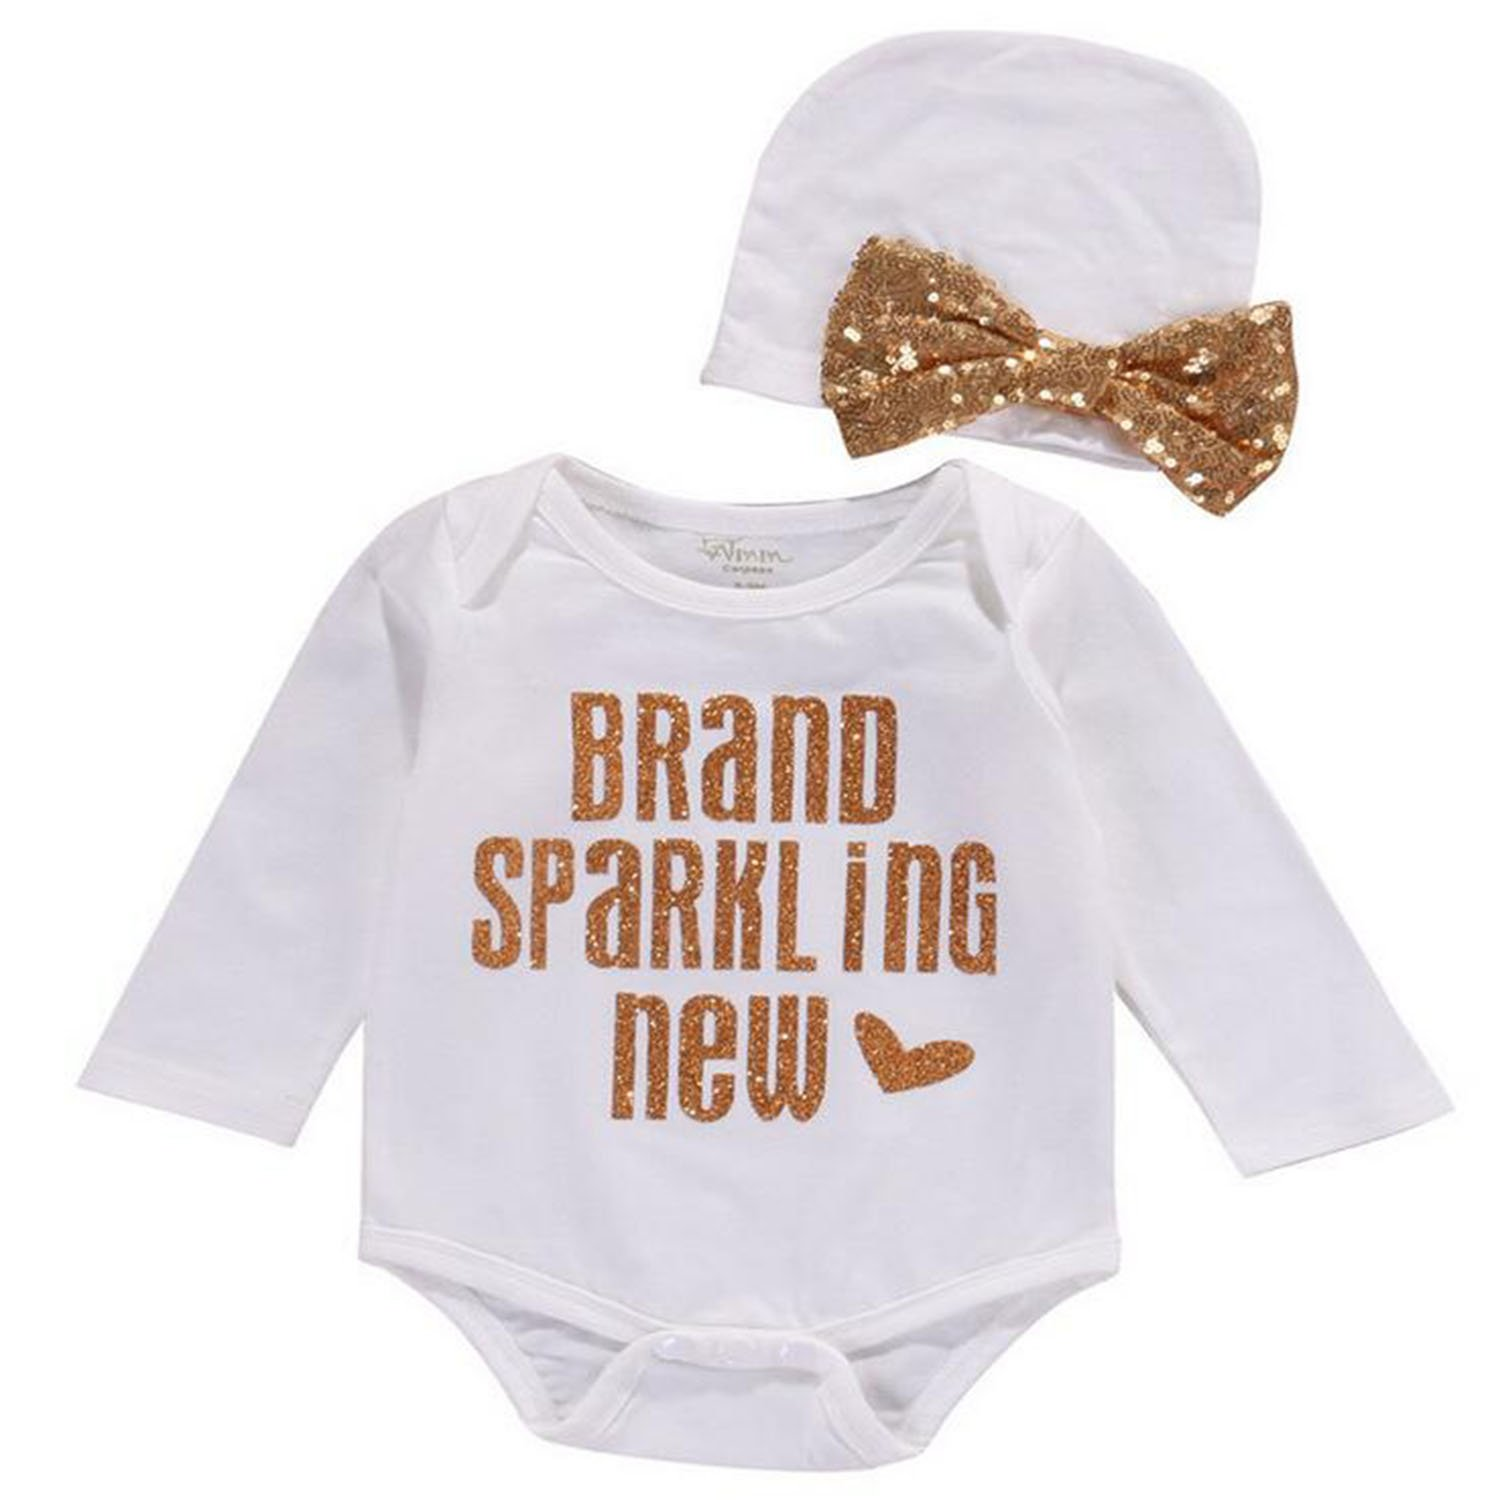 FIZUOXVE Newborn Girl's Toddler Spakrling Letter Print Cute Bodysuit Romper Onesie Clothes Outfit Gold 0-6 Months